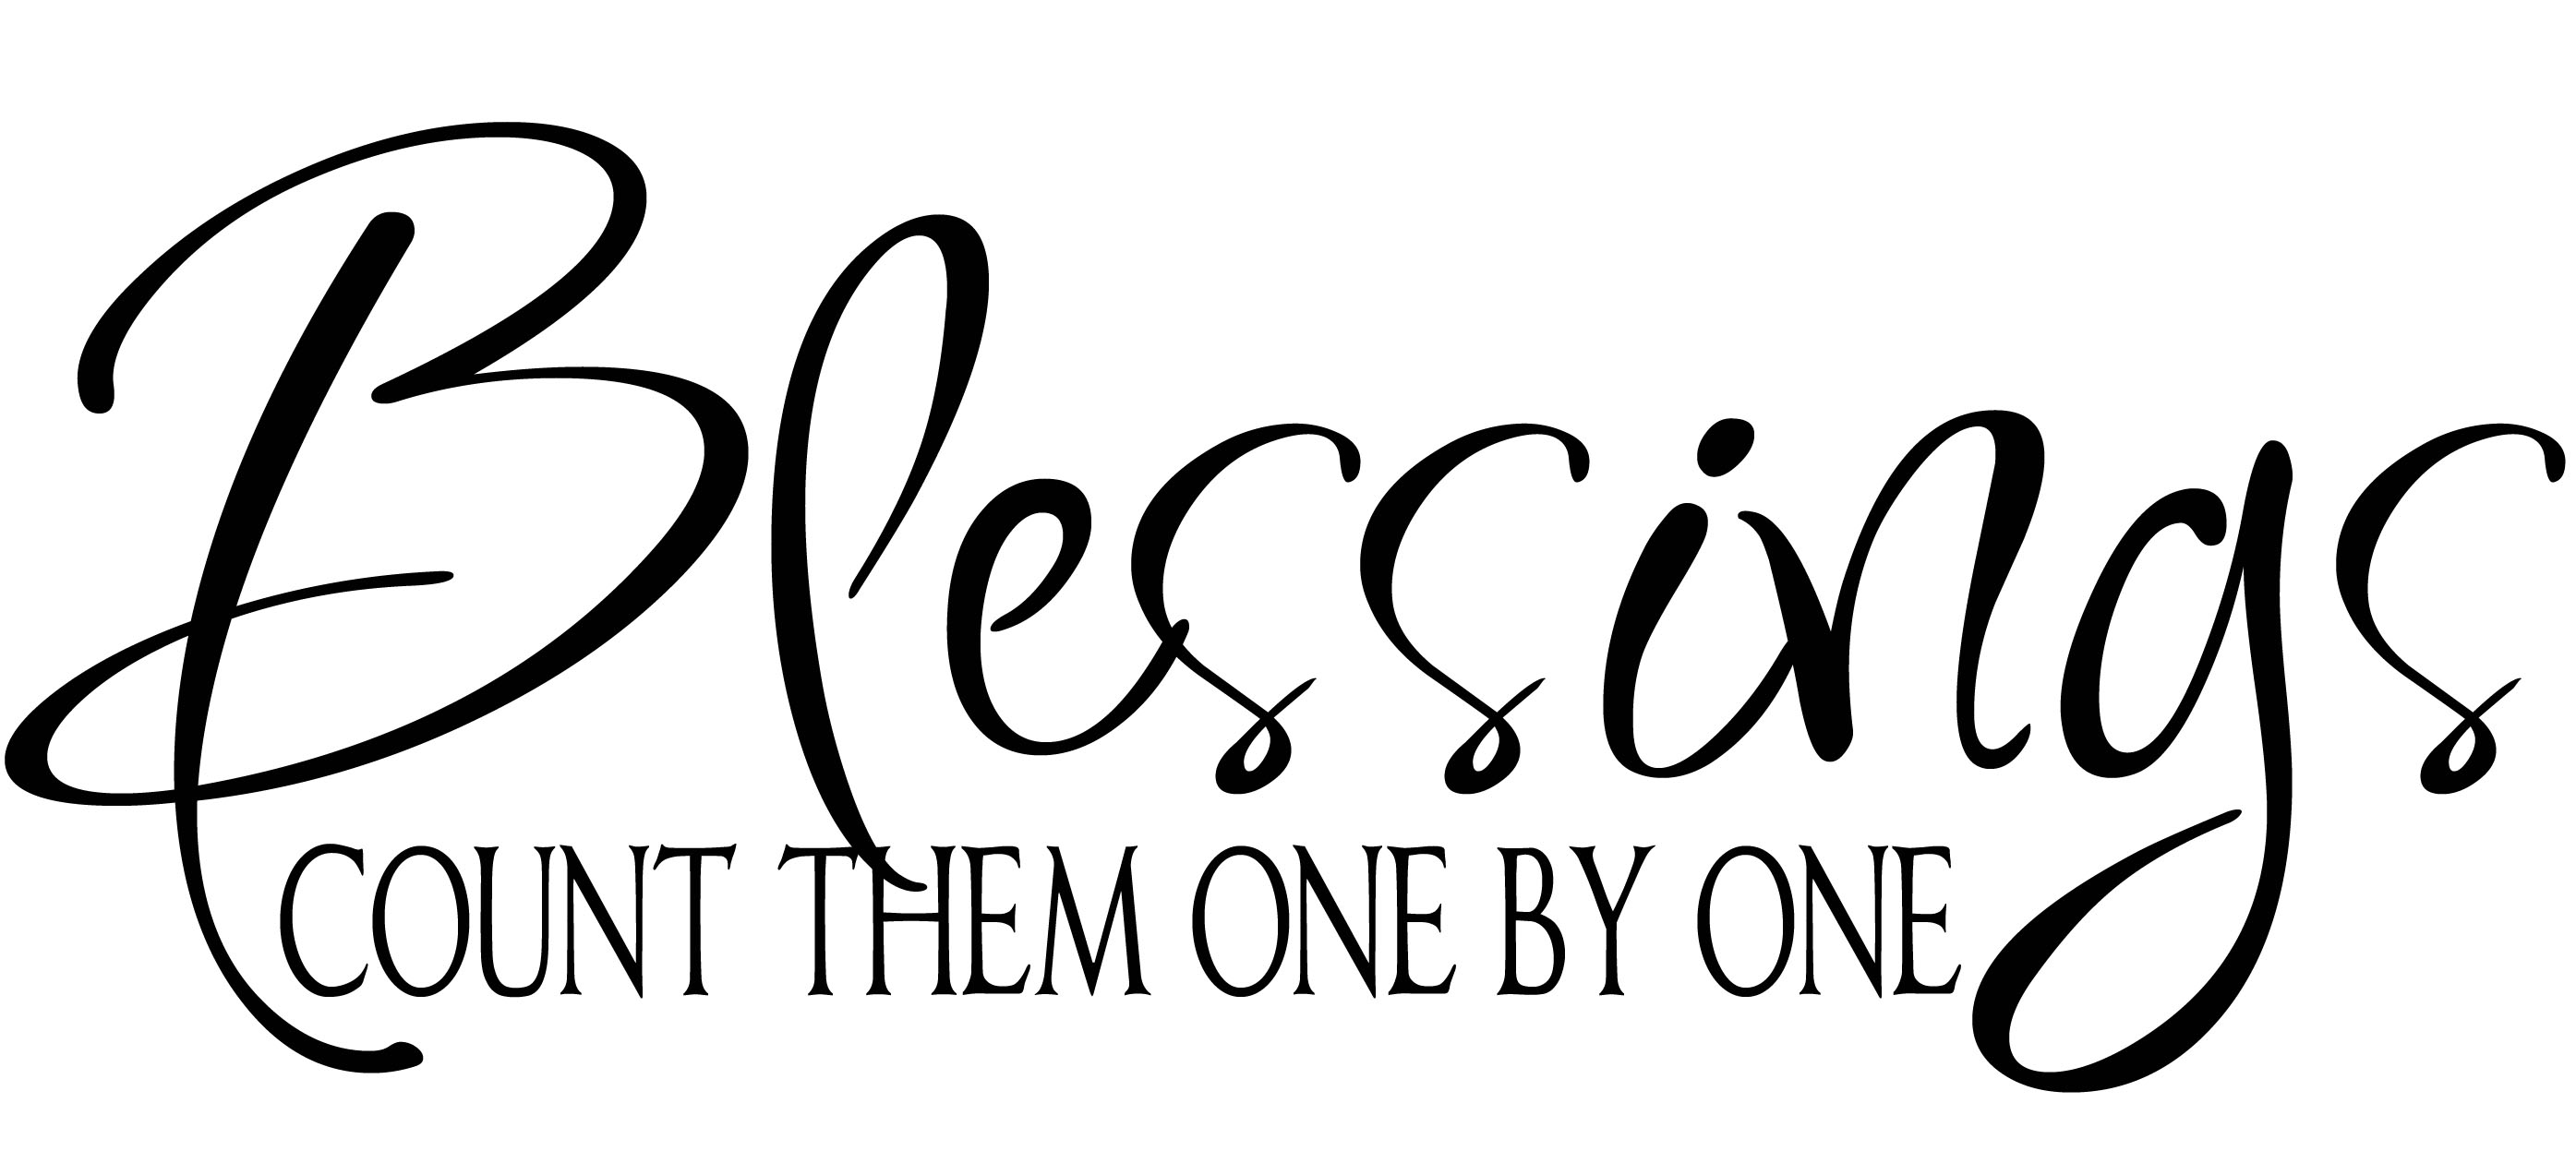 Blessings quotes in clipart